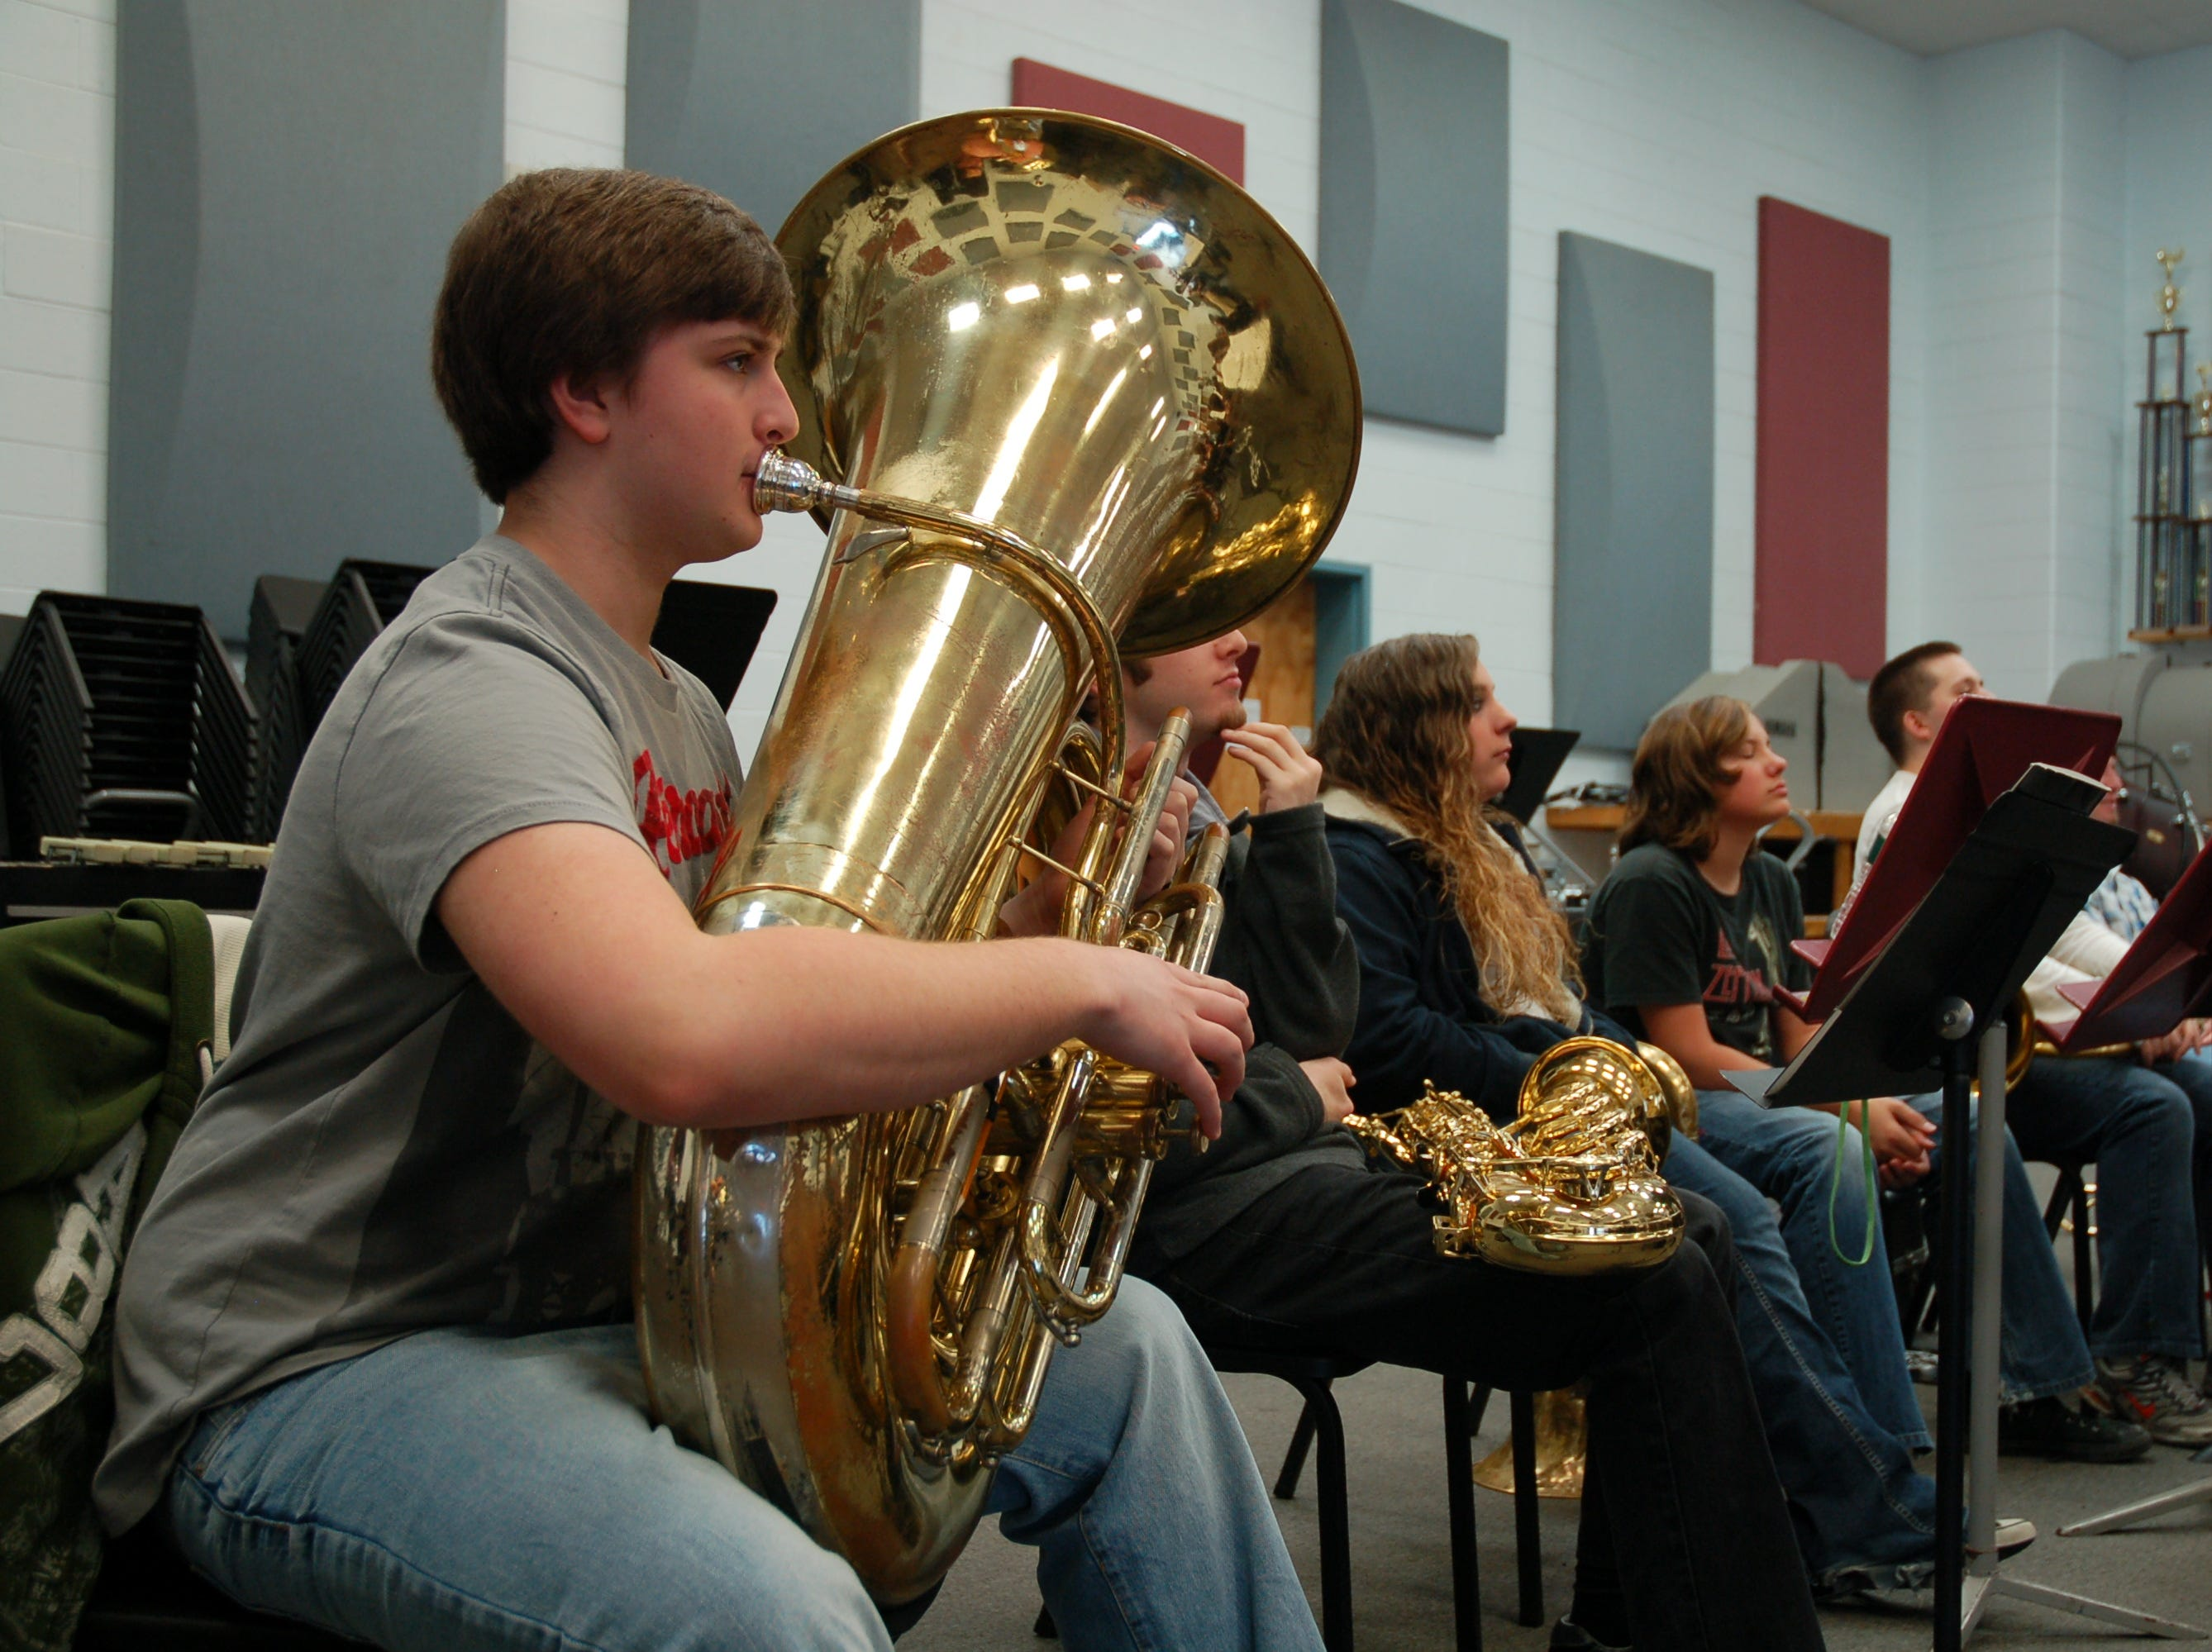 John Paul Powers sits in the back row, ready to play, during Clinton High School band practice on March 29, 2011. John Paul, 15, recently won a Southeastern U.S. tuba competition.